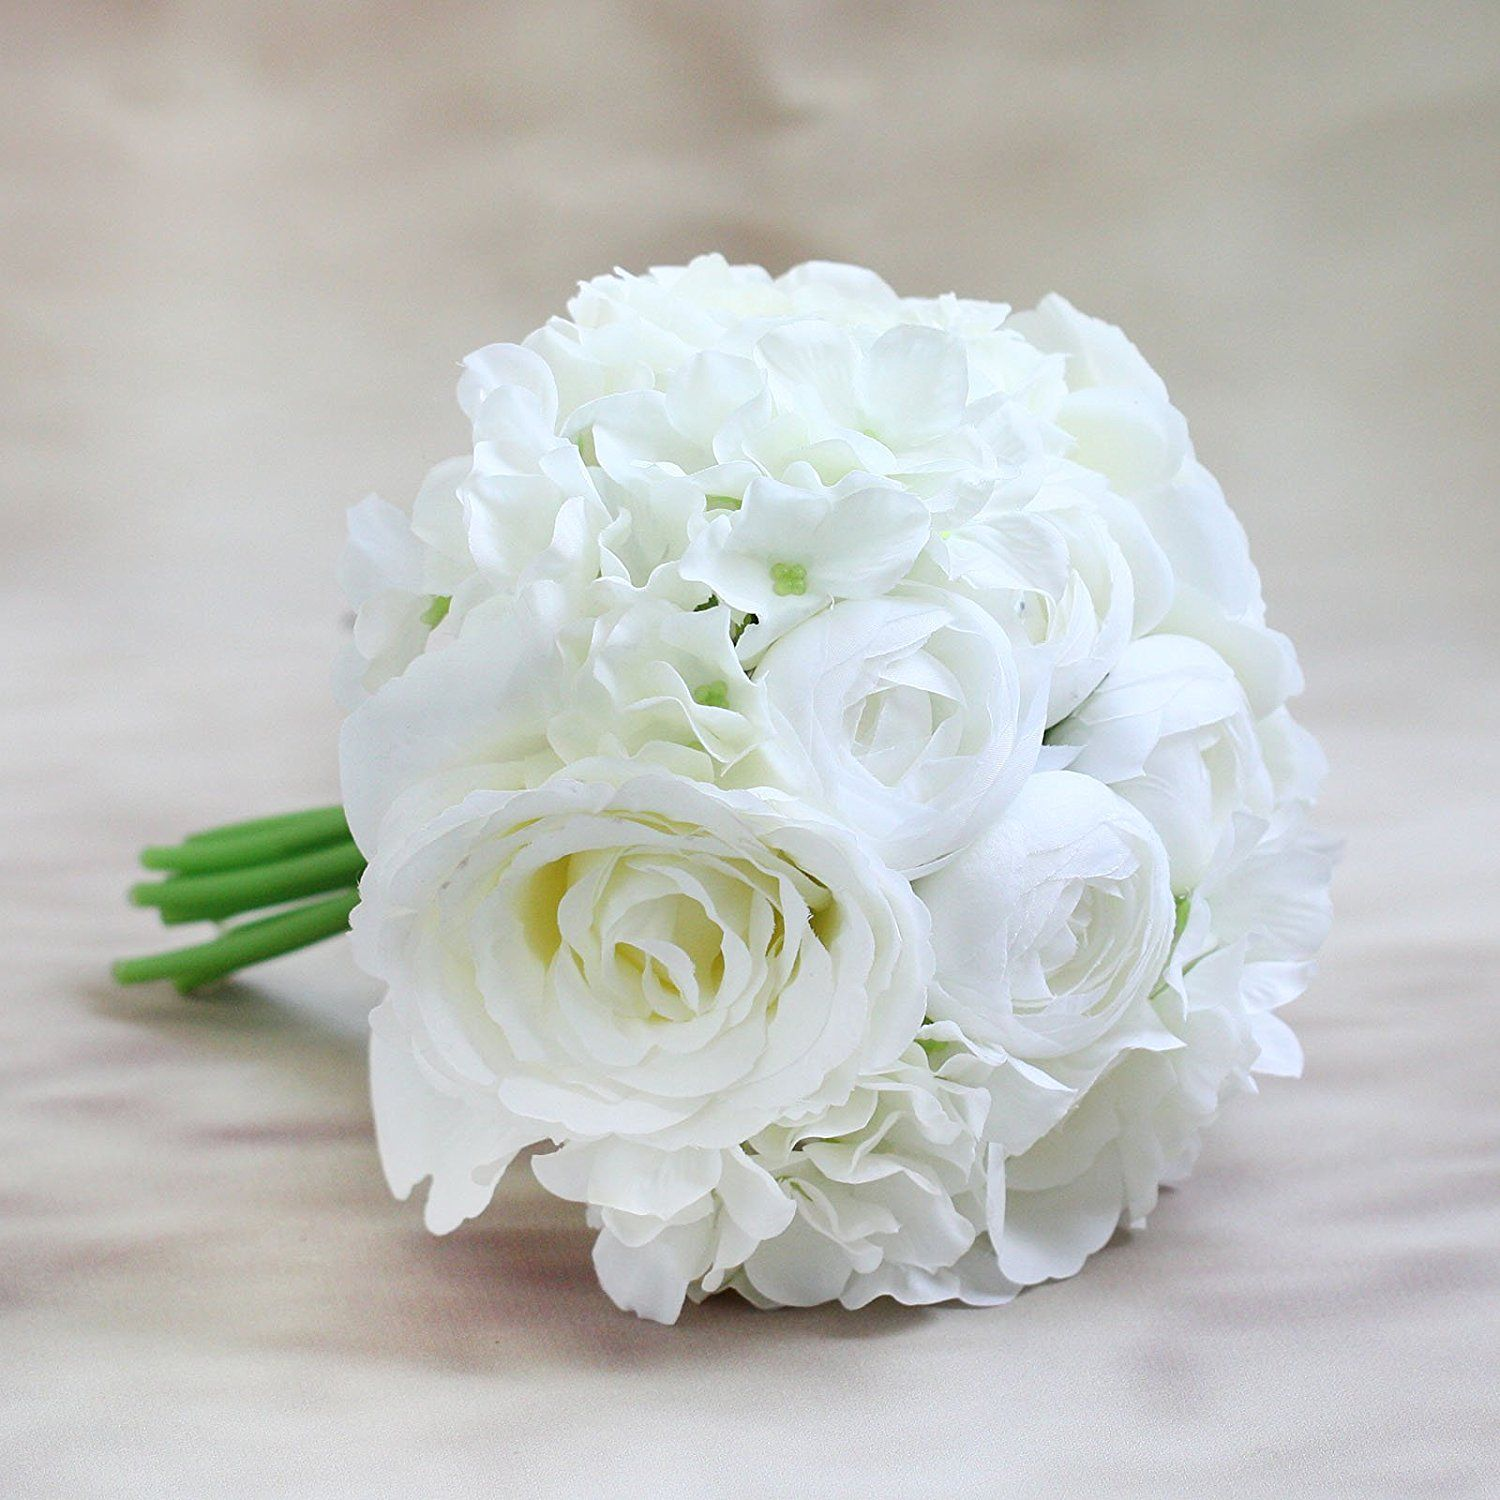 Bridal bridesmaid flower bouquet kc651 white read more reviews silk artificial flower bridal bridesmaid bouquet peony roses hydrangeas wedding decoration white peony 1 check out the image by visiting the link izmirmasajfo Gallery